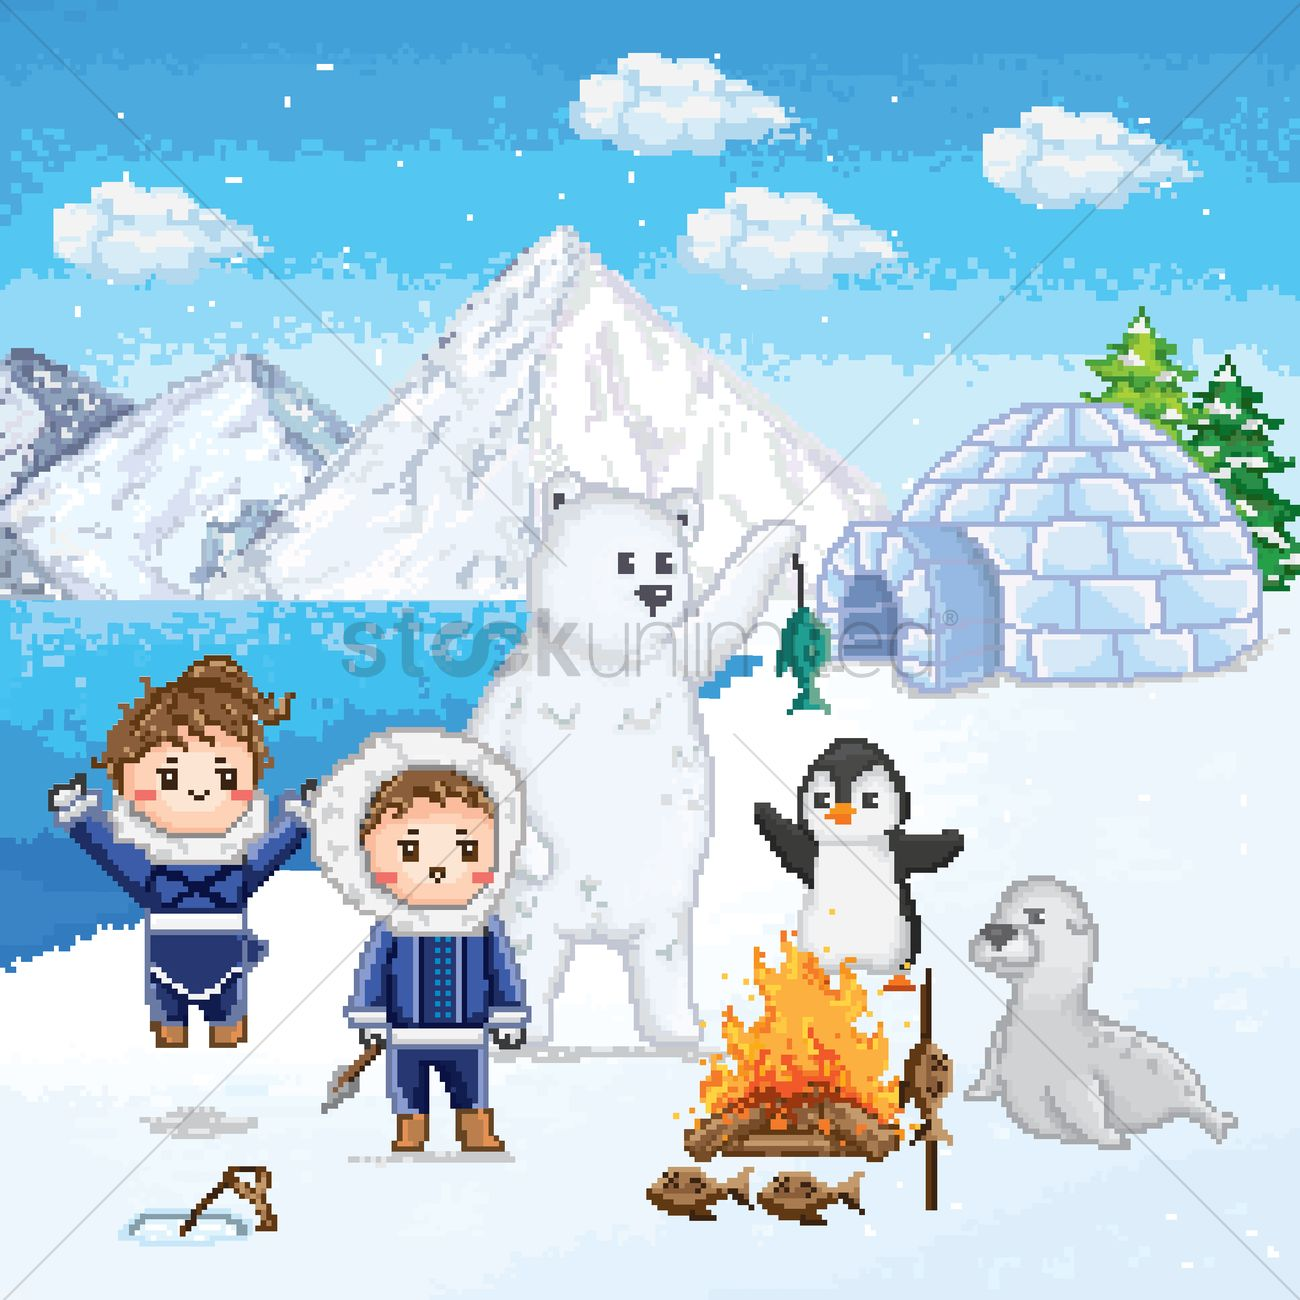 Eskimos with animals in the artic Vector Image.